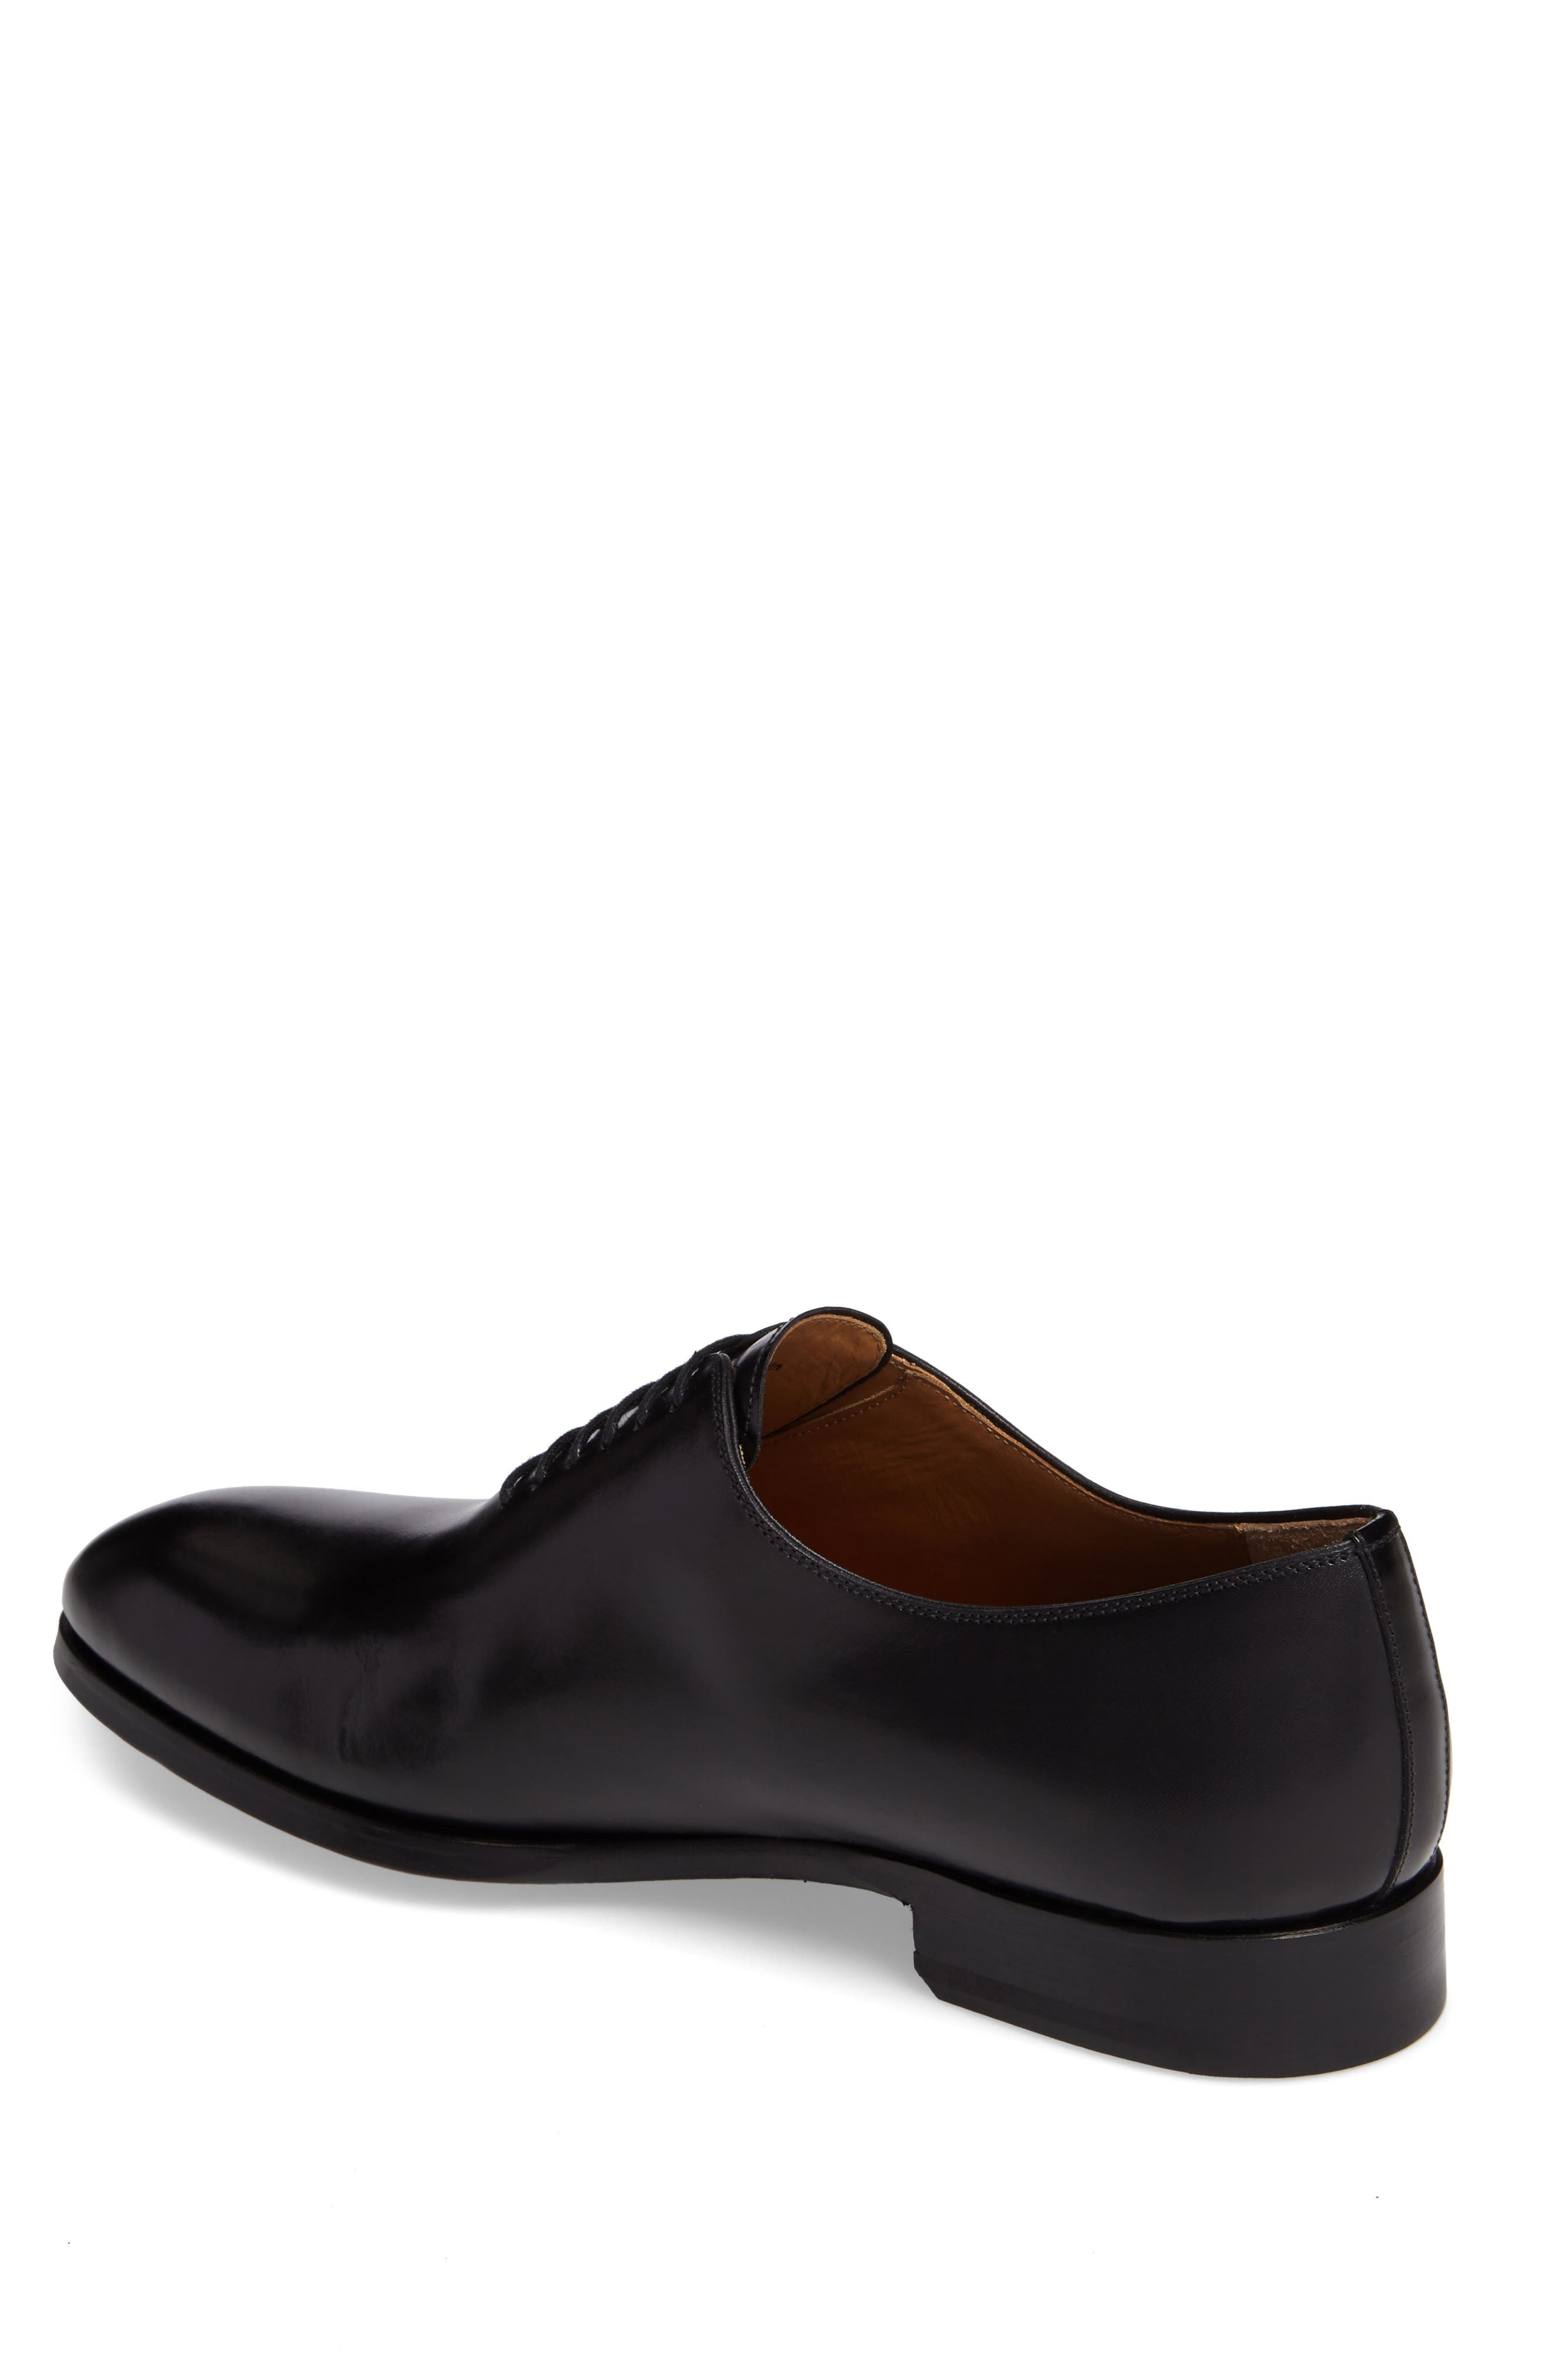 Montay Wholecut Oxford,                             Alternate thumbnail 2, color,                             Black Leather